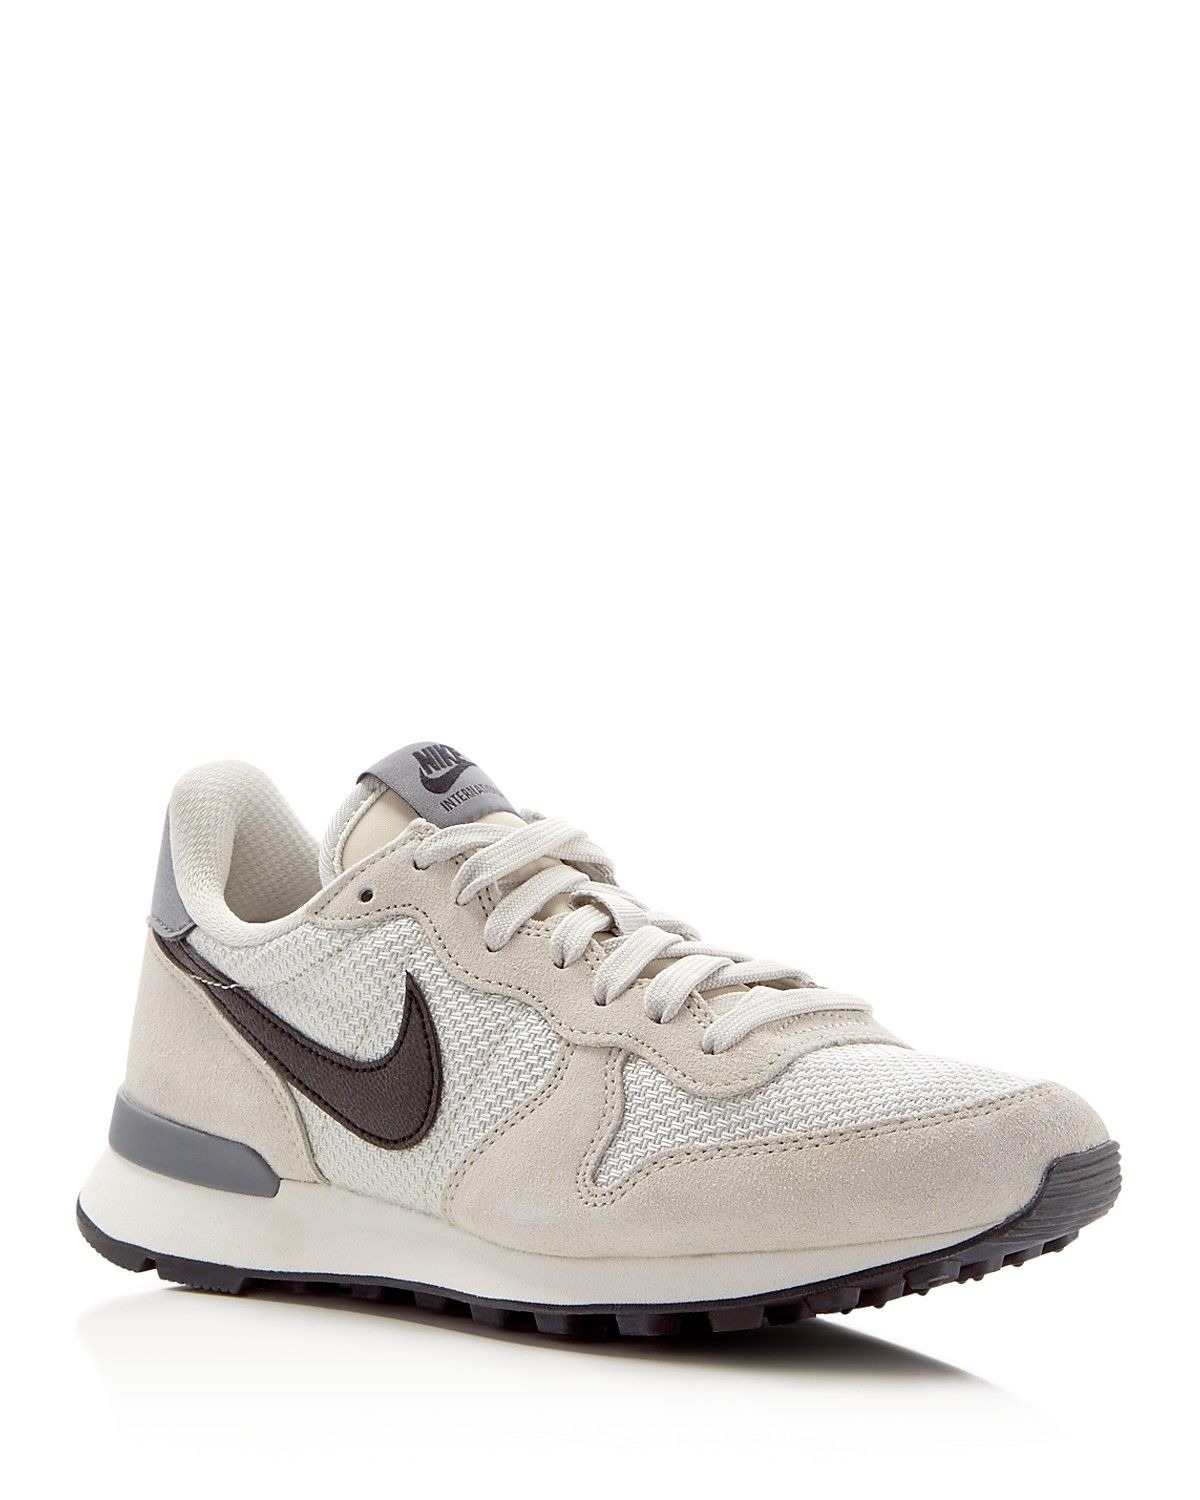 more photos 6df86 d9e5a With leather and suede details, a premium fit and comfortable feel, the…  Nike